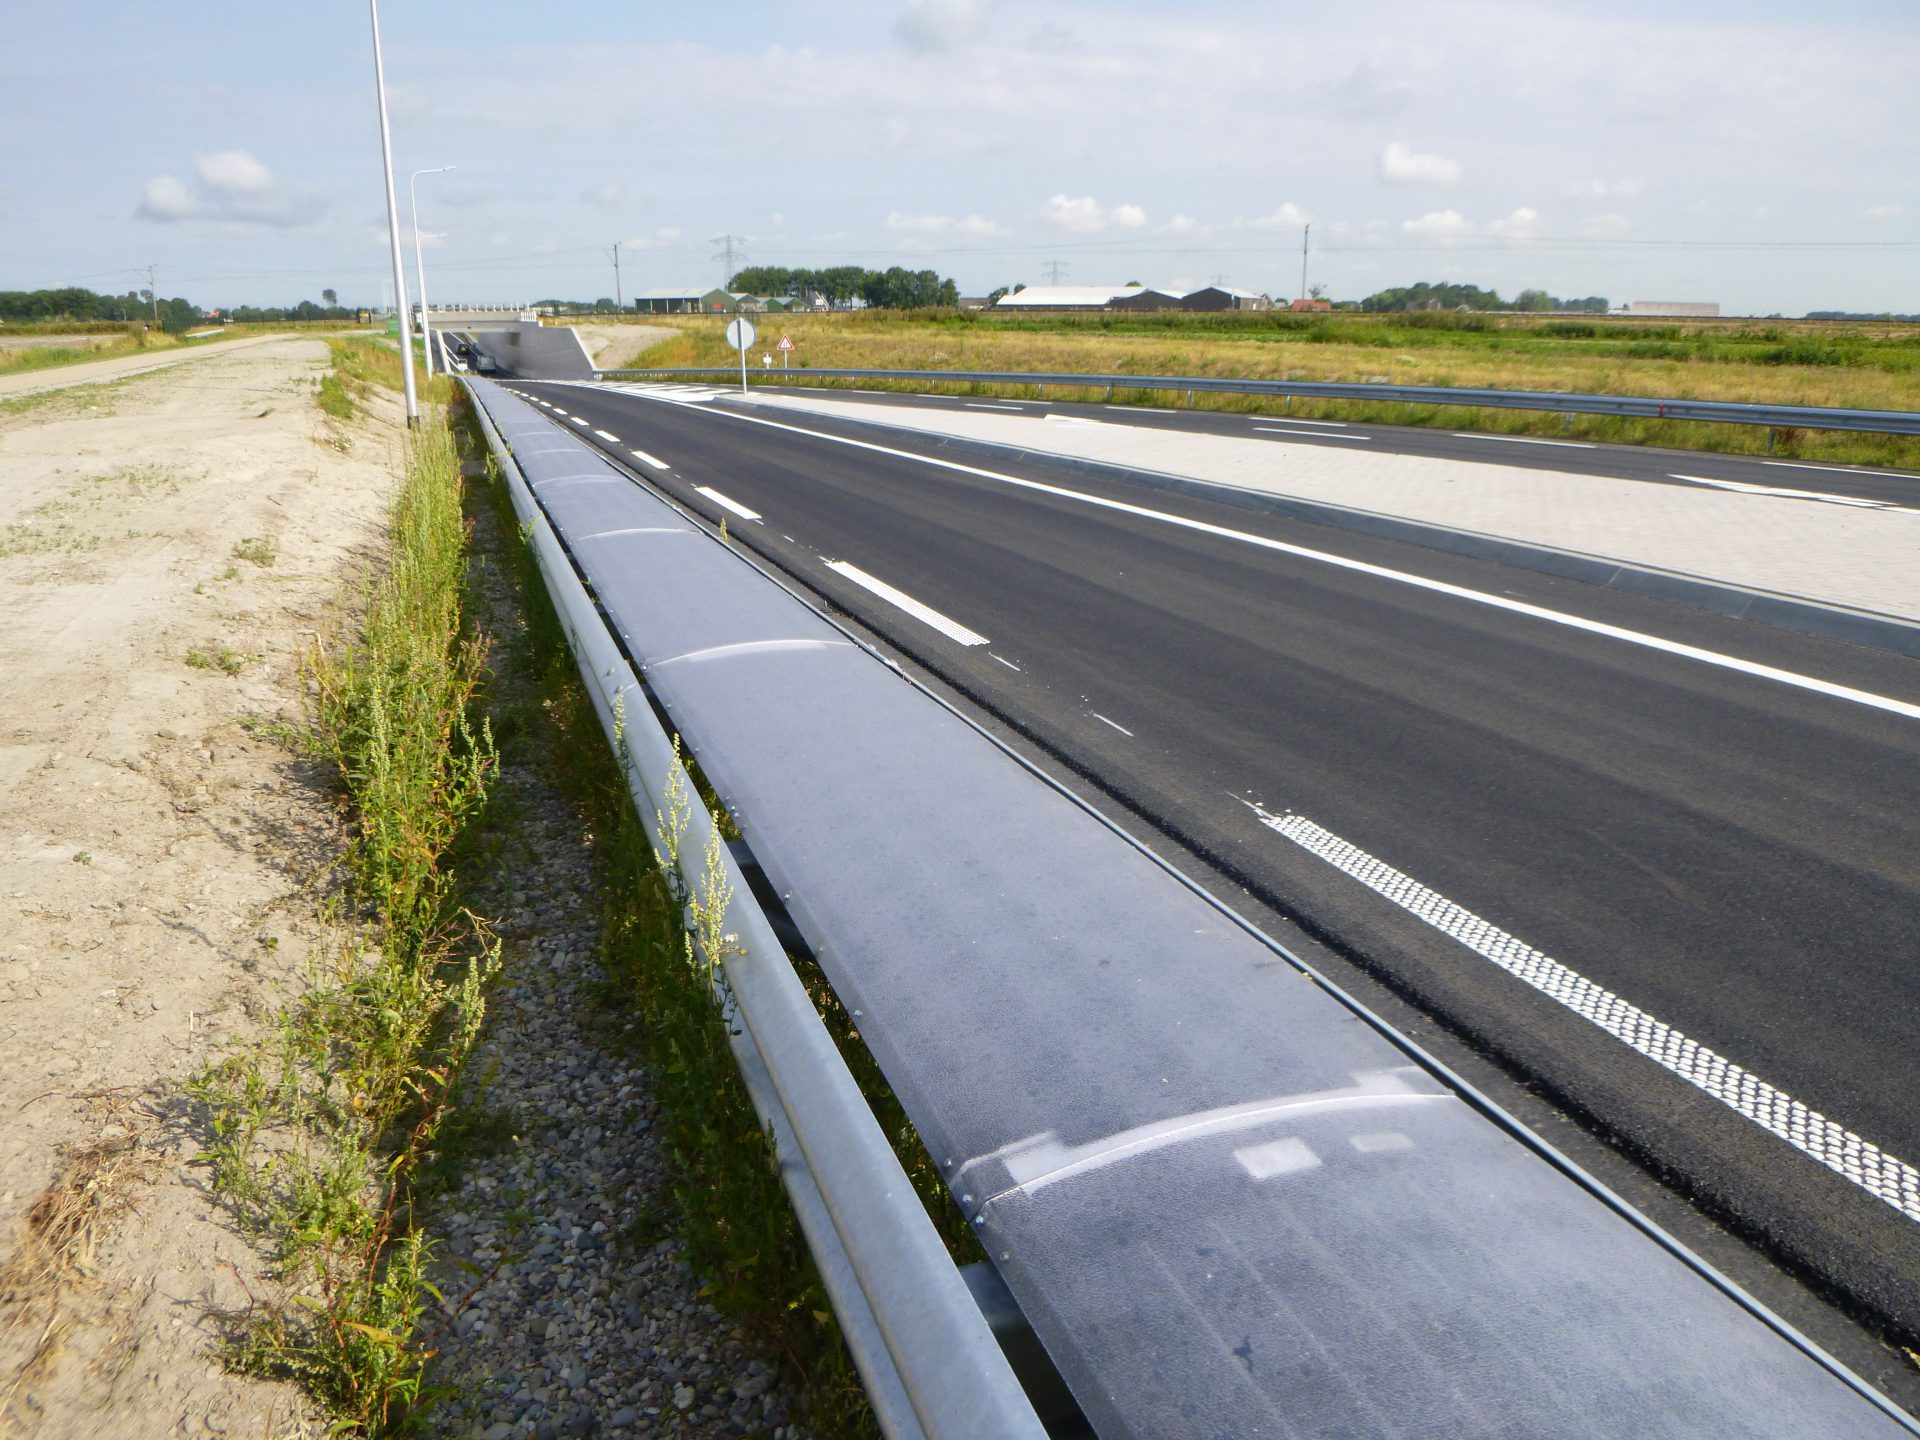 Solar cells on a crash barrier